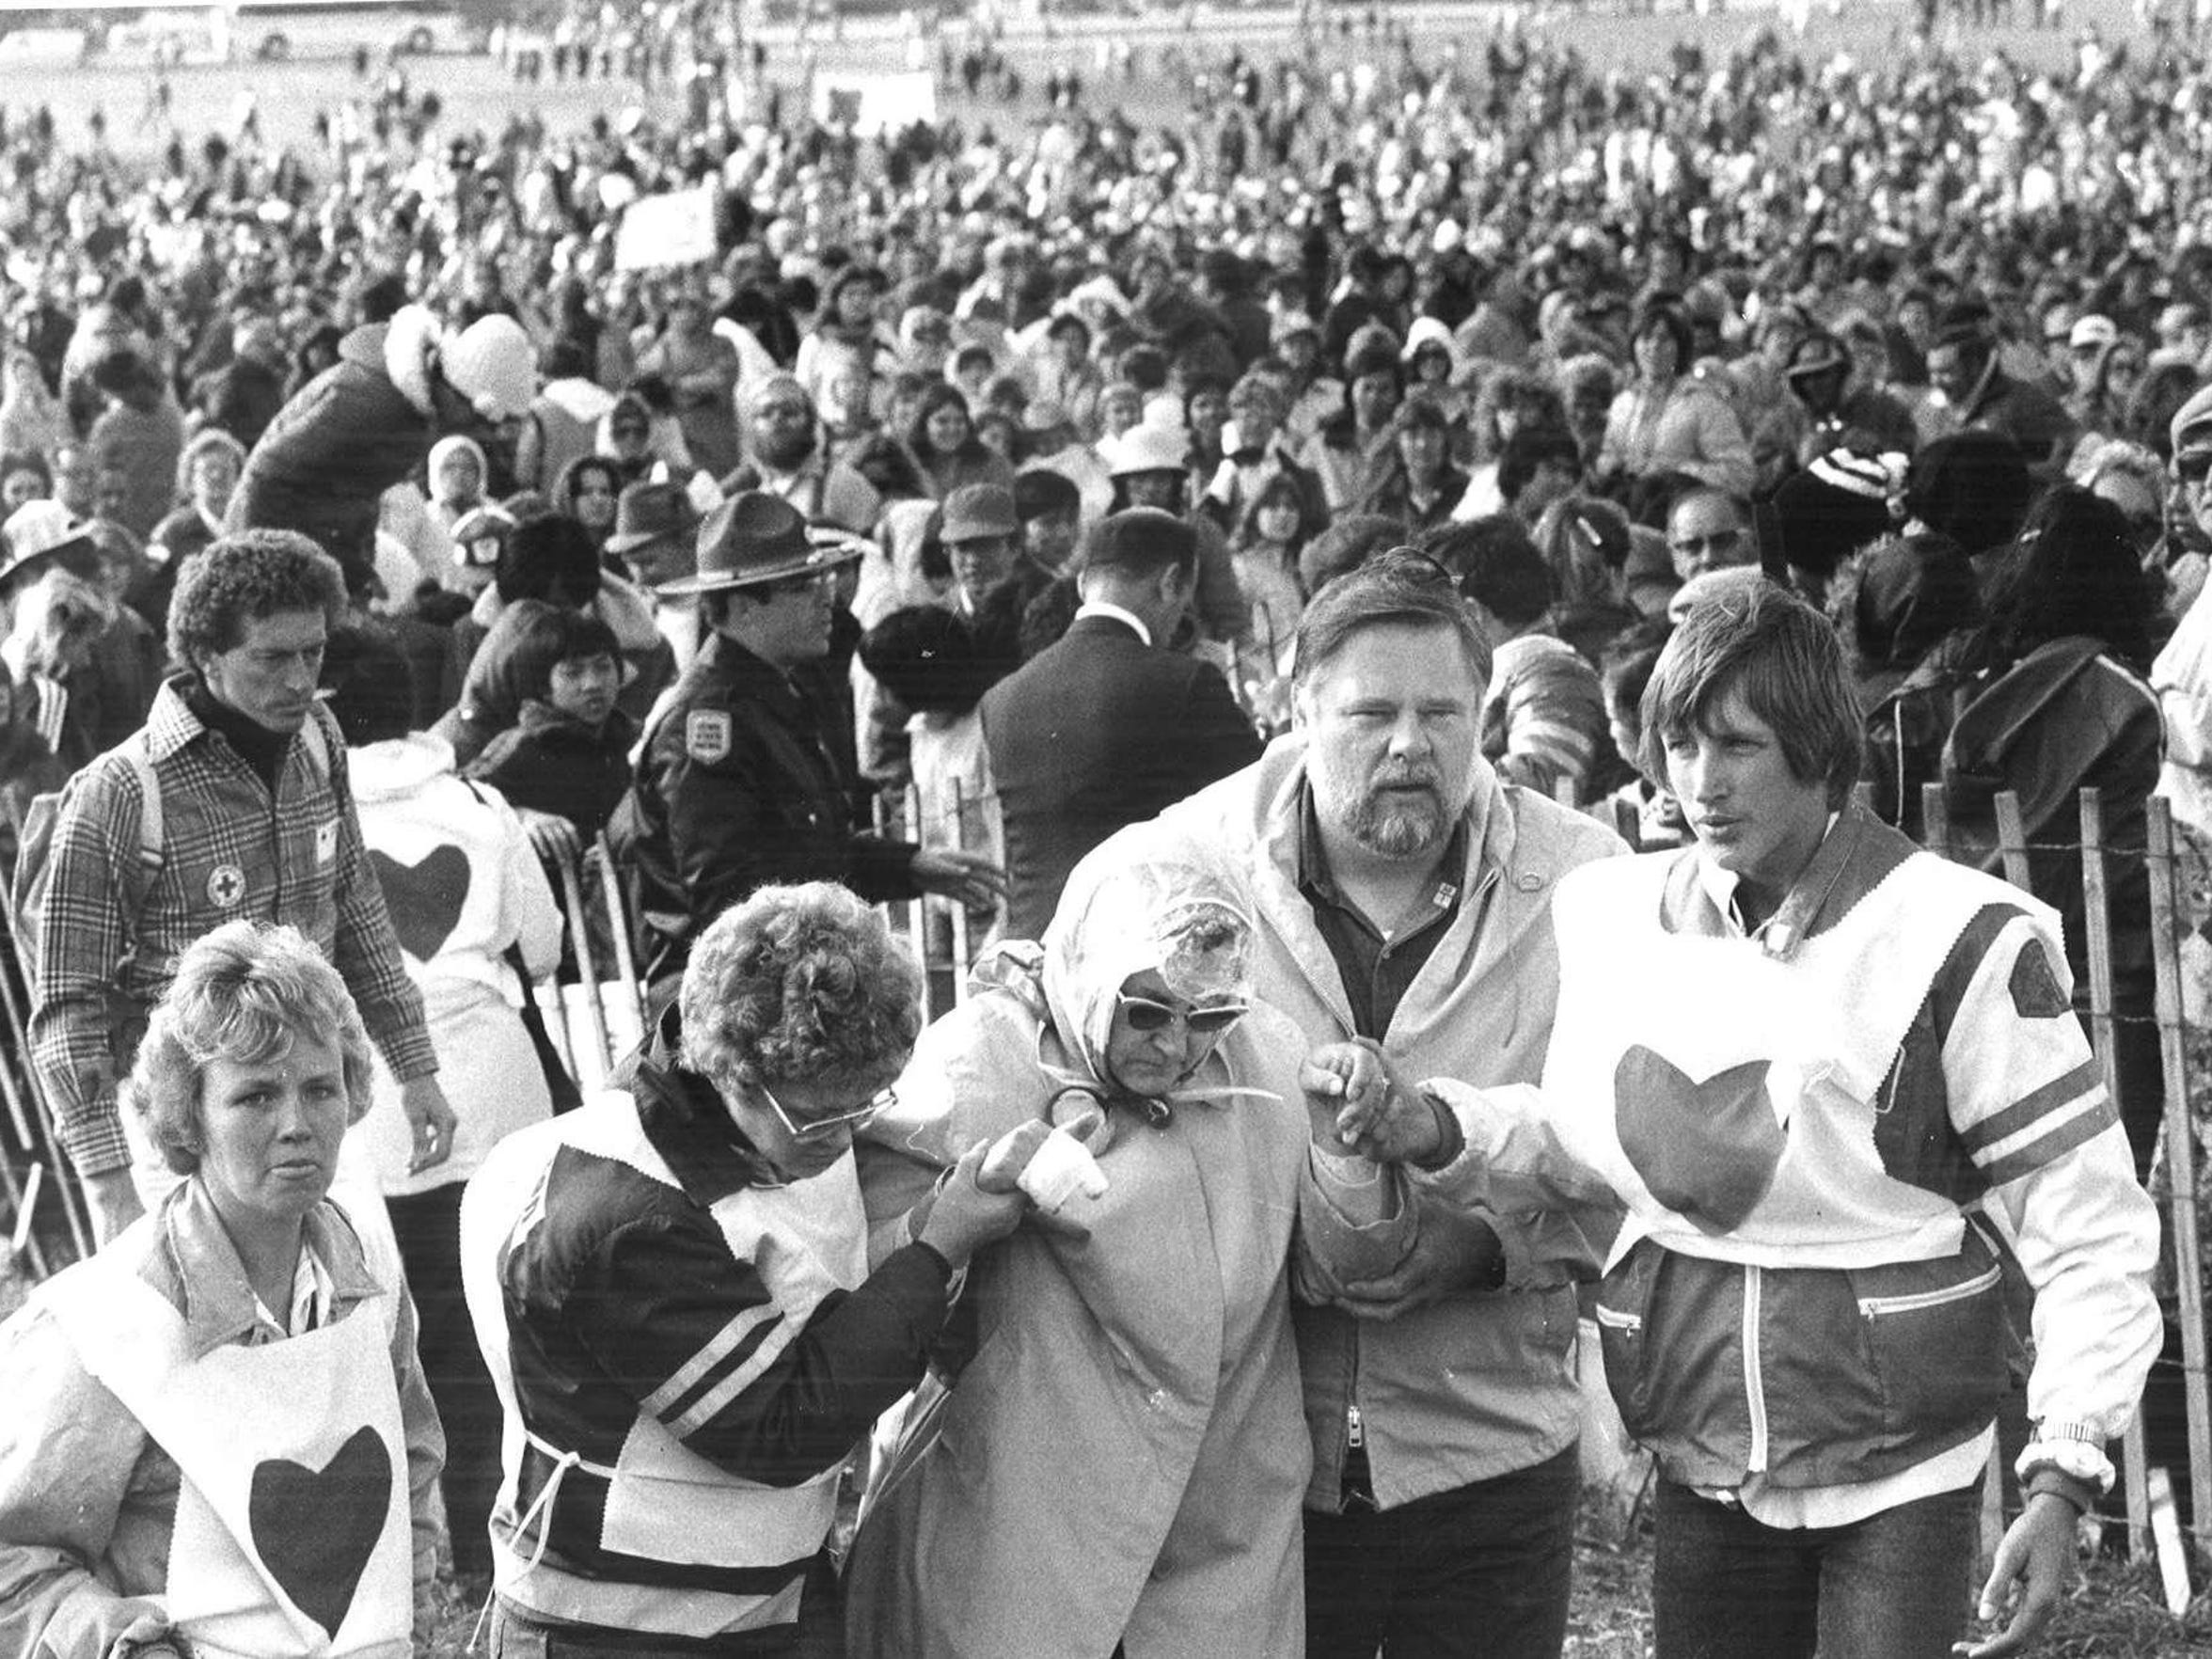 Pope John Paul II visited Iowa on a chilly day — the high was 57 degrees — but the assembled surged forward when the pontiff blessed the crowd in sections on Oct. 4, 1979.